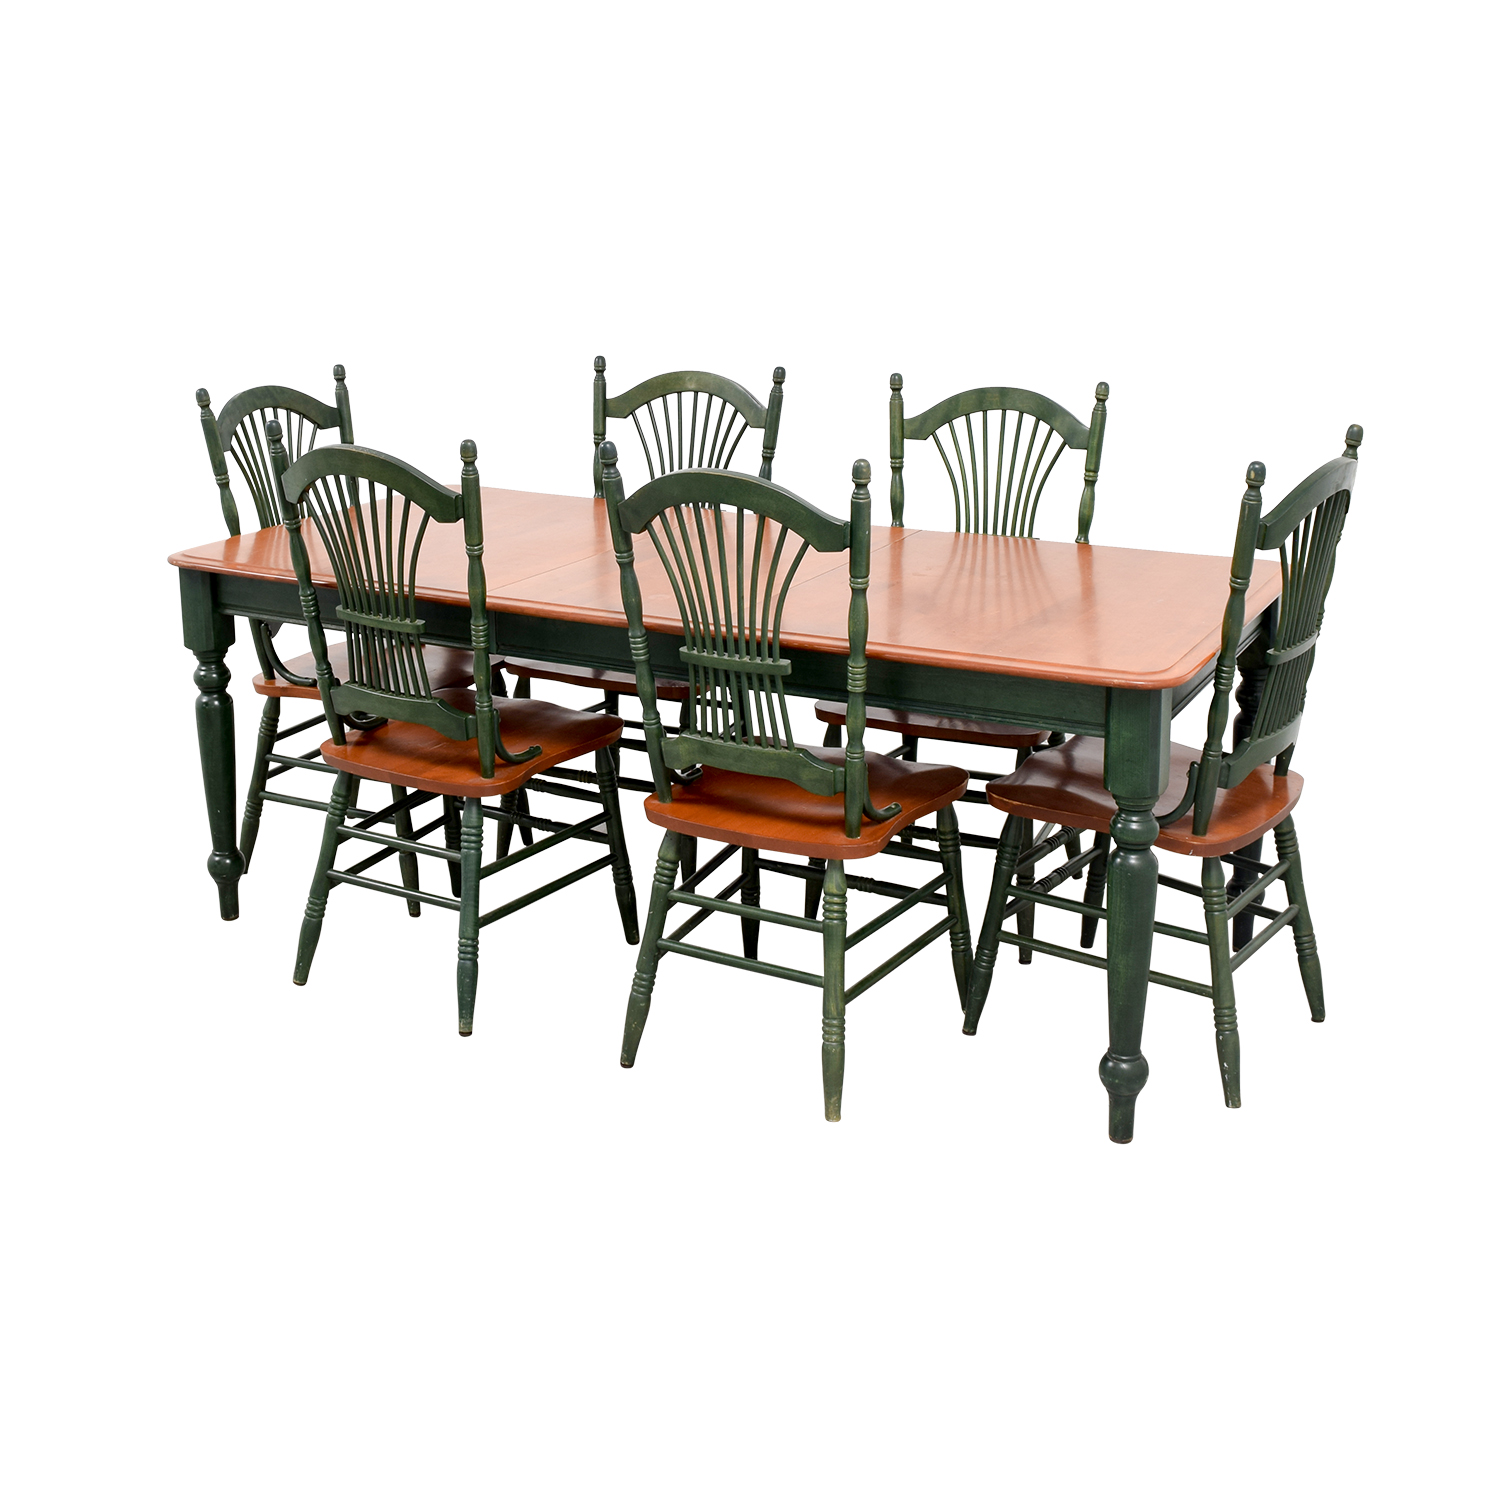 Dining Table with Extension Leaf and Green Chairs price